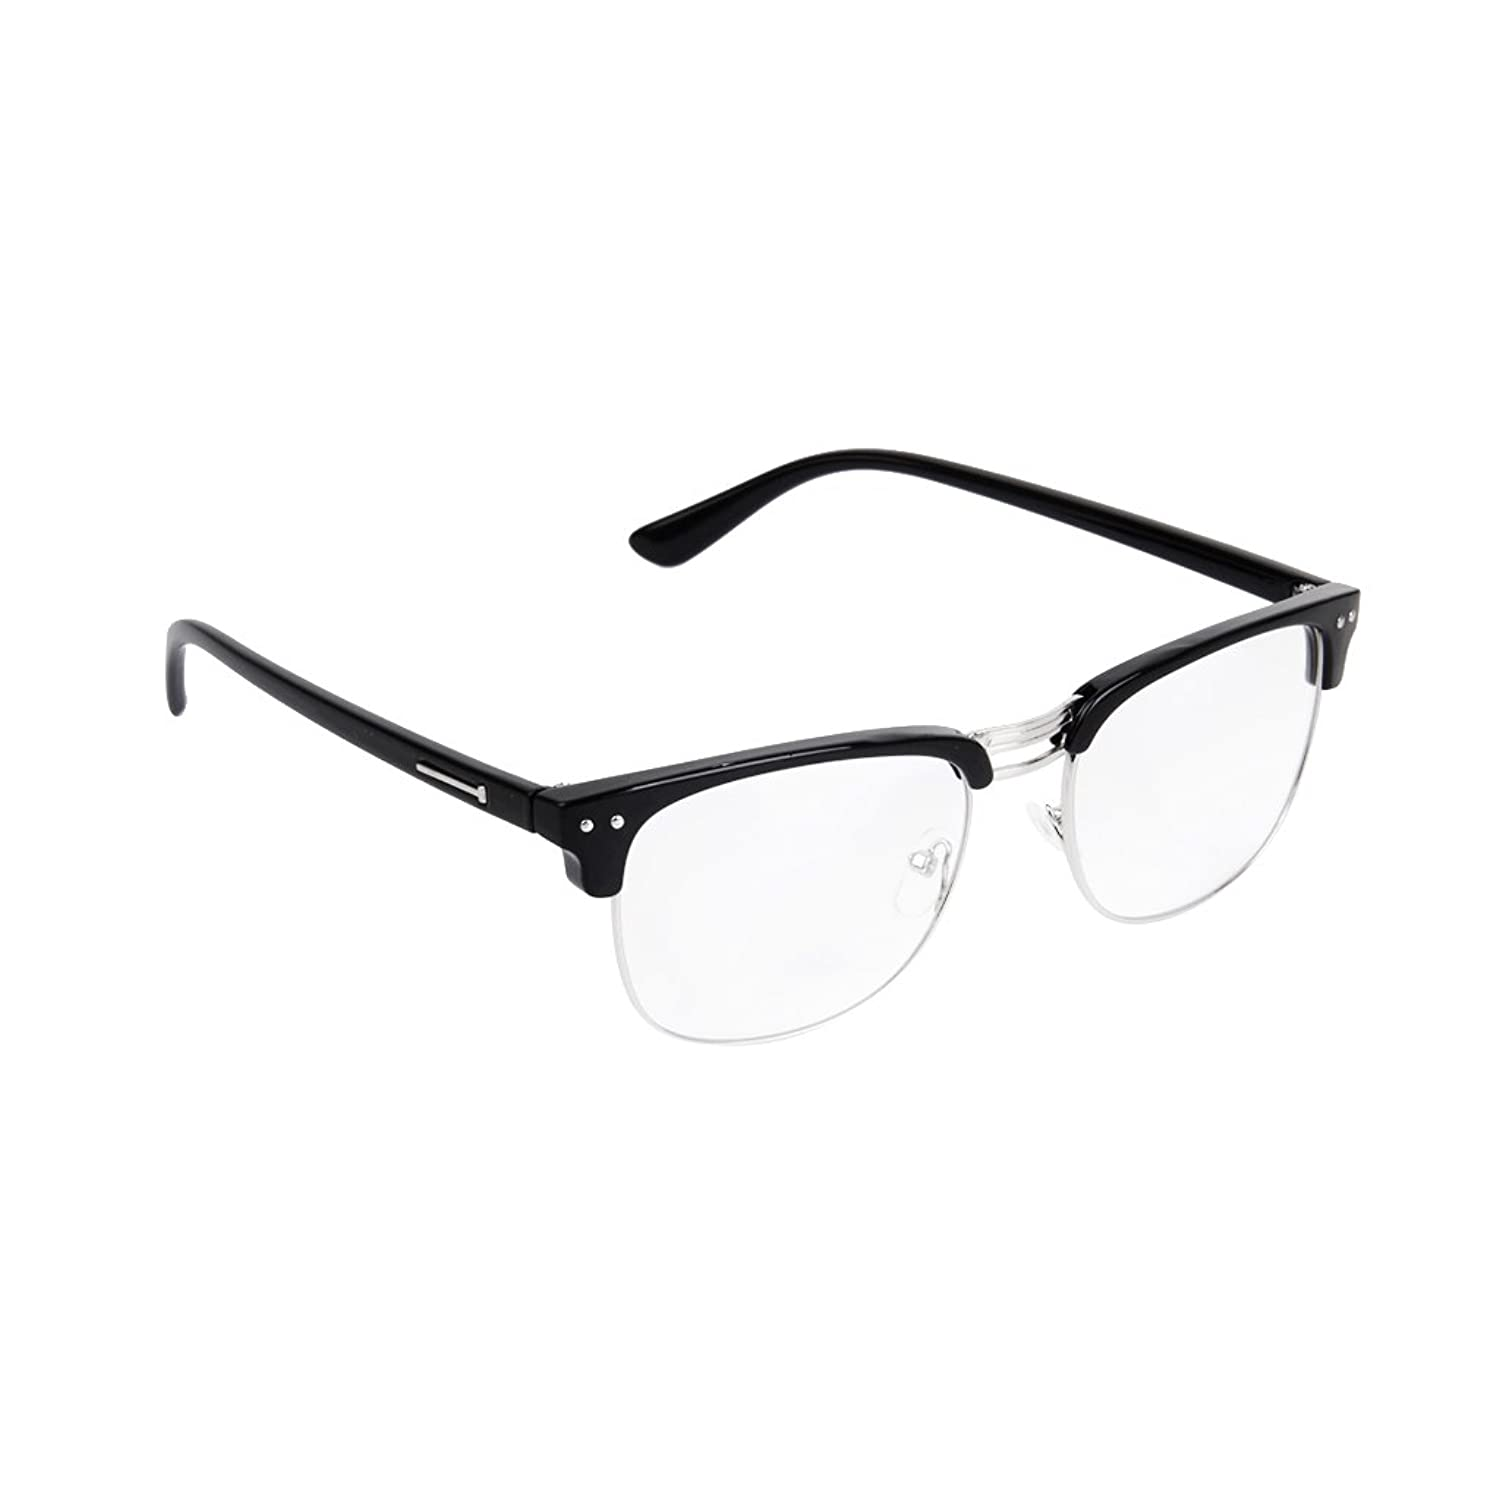 ac582c0e4c Amazon.co.uk  Frames - Eyewear   Accessories  Clothing